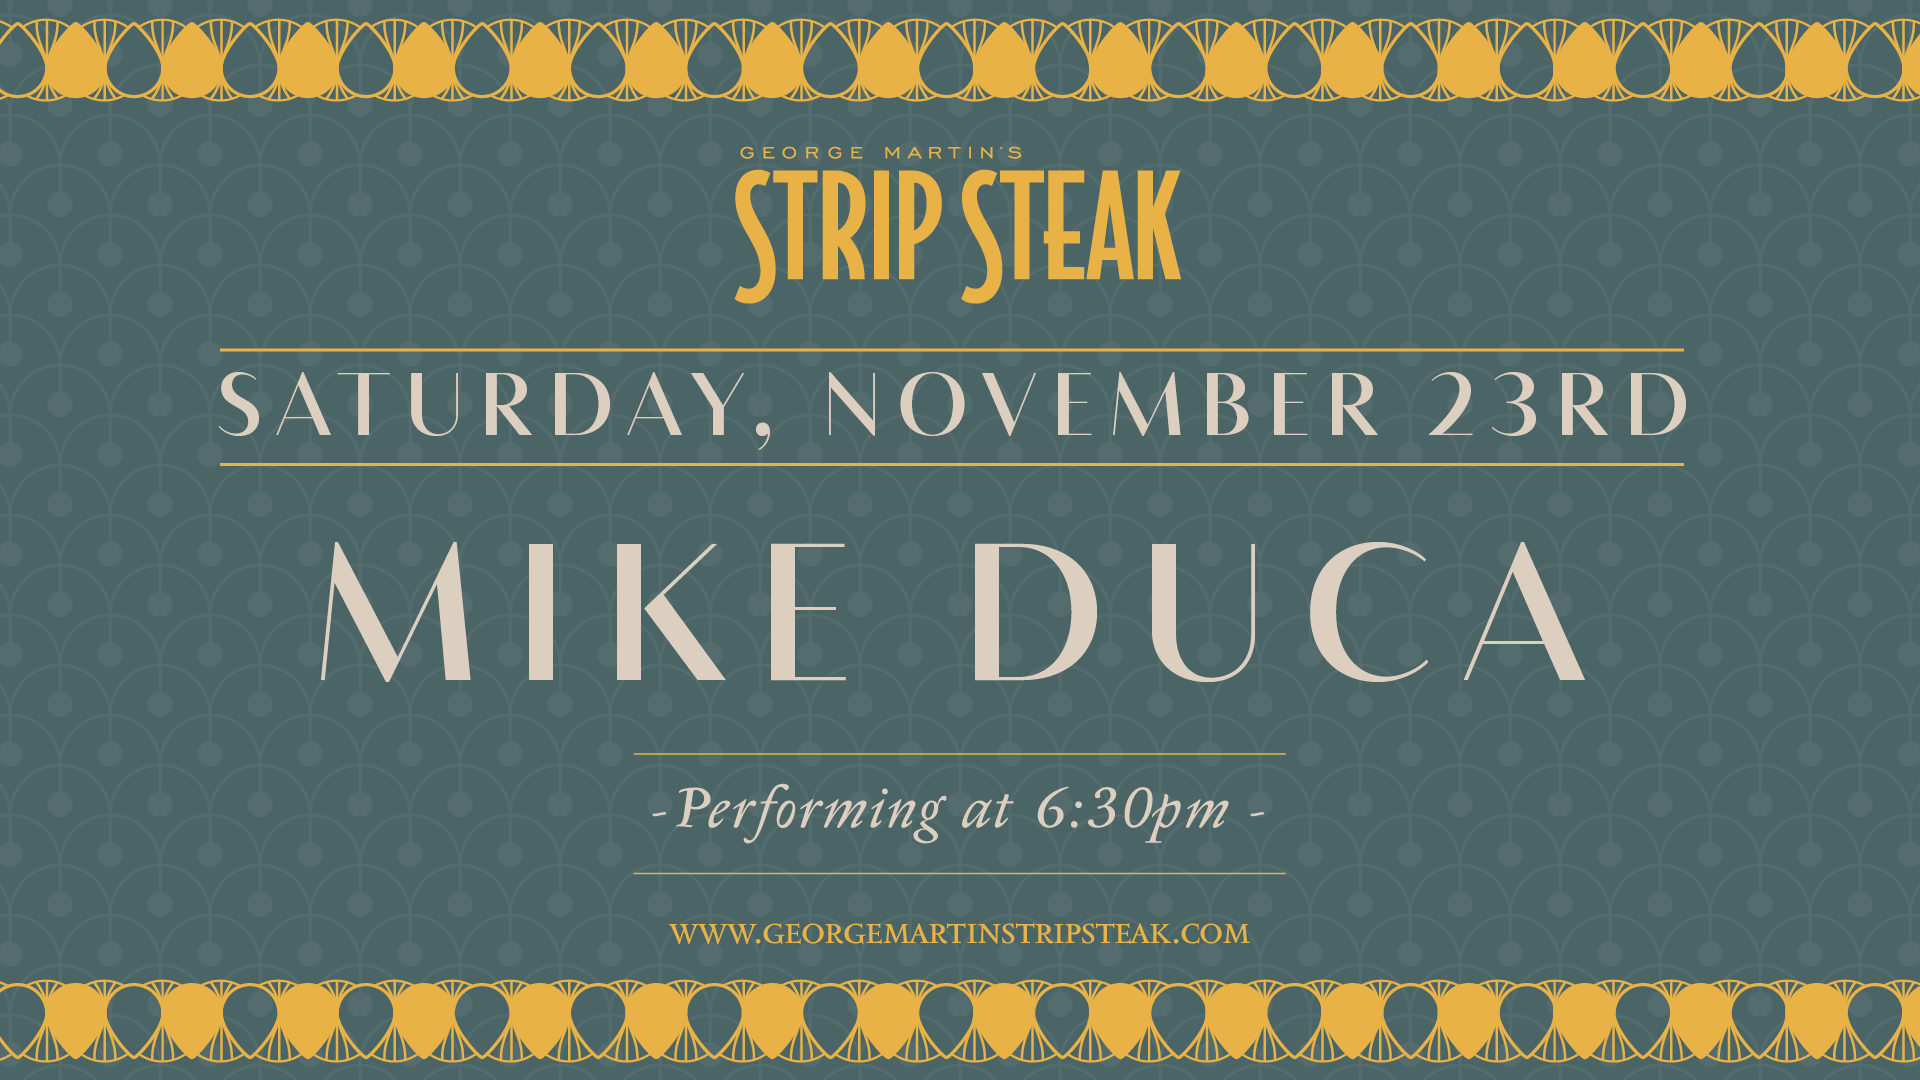 Flyer for Saturday, November 23rd with Mike Duca performing at 6:30pm.